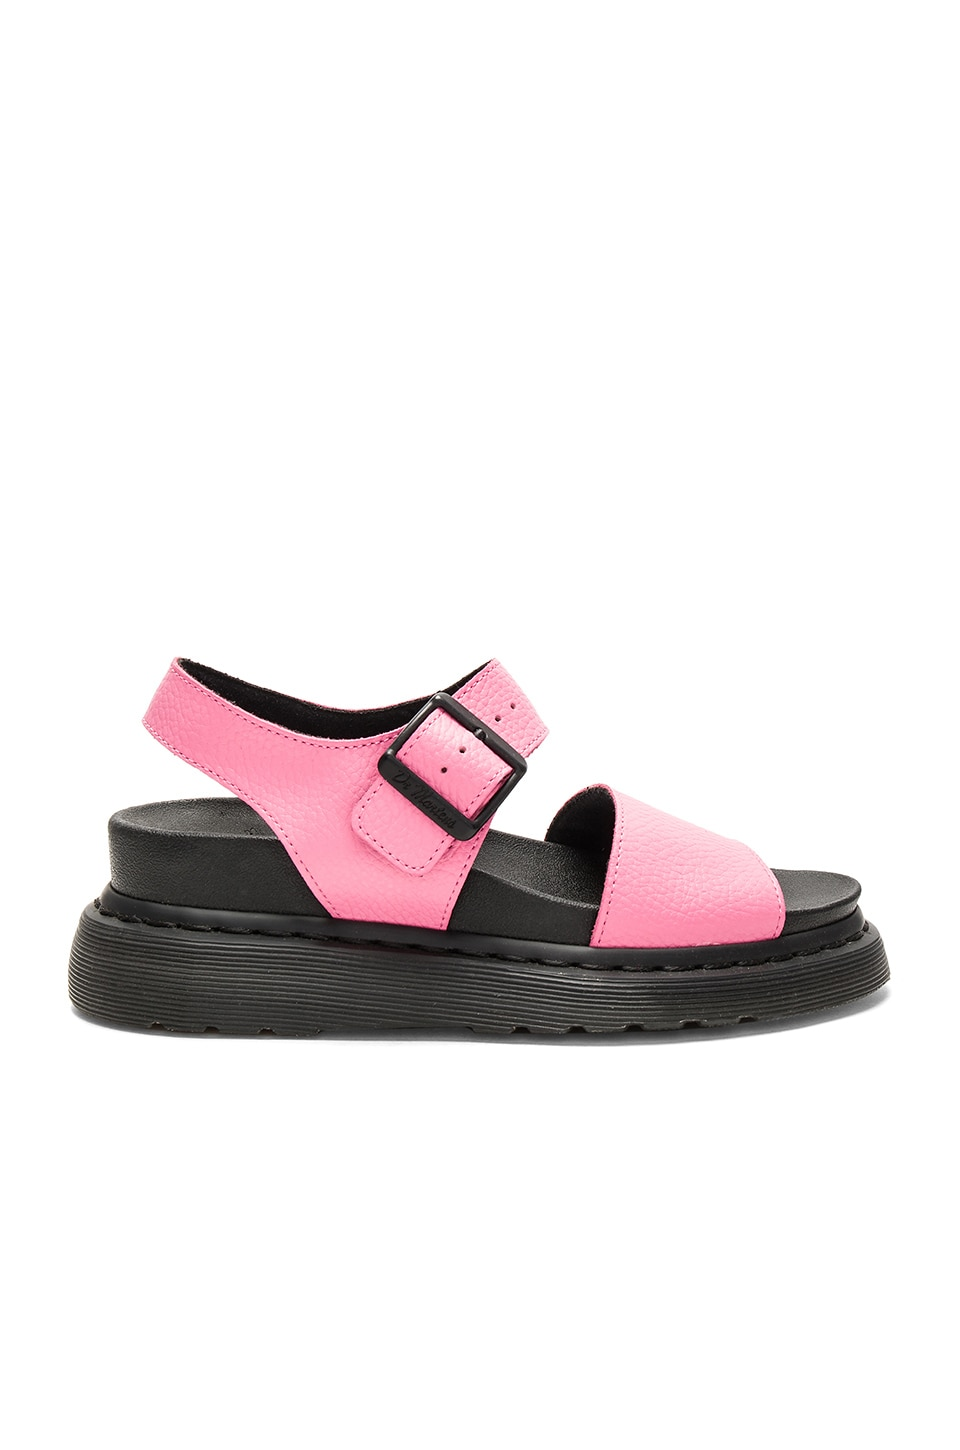 Romi Y Strap Sandal by Dr. Martens